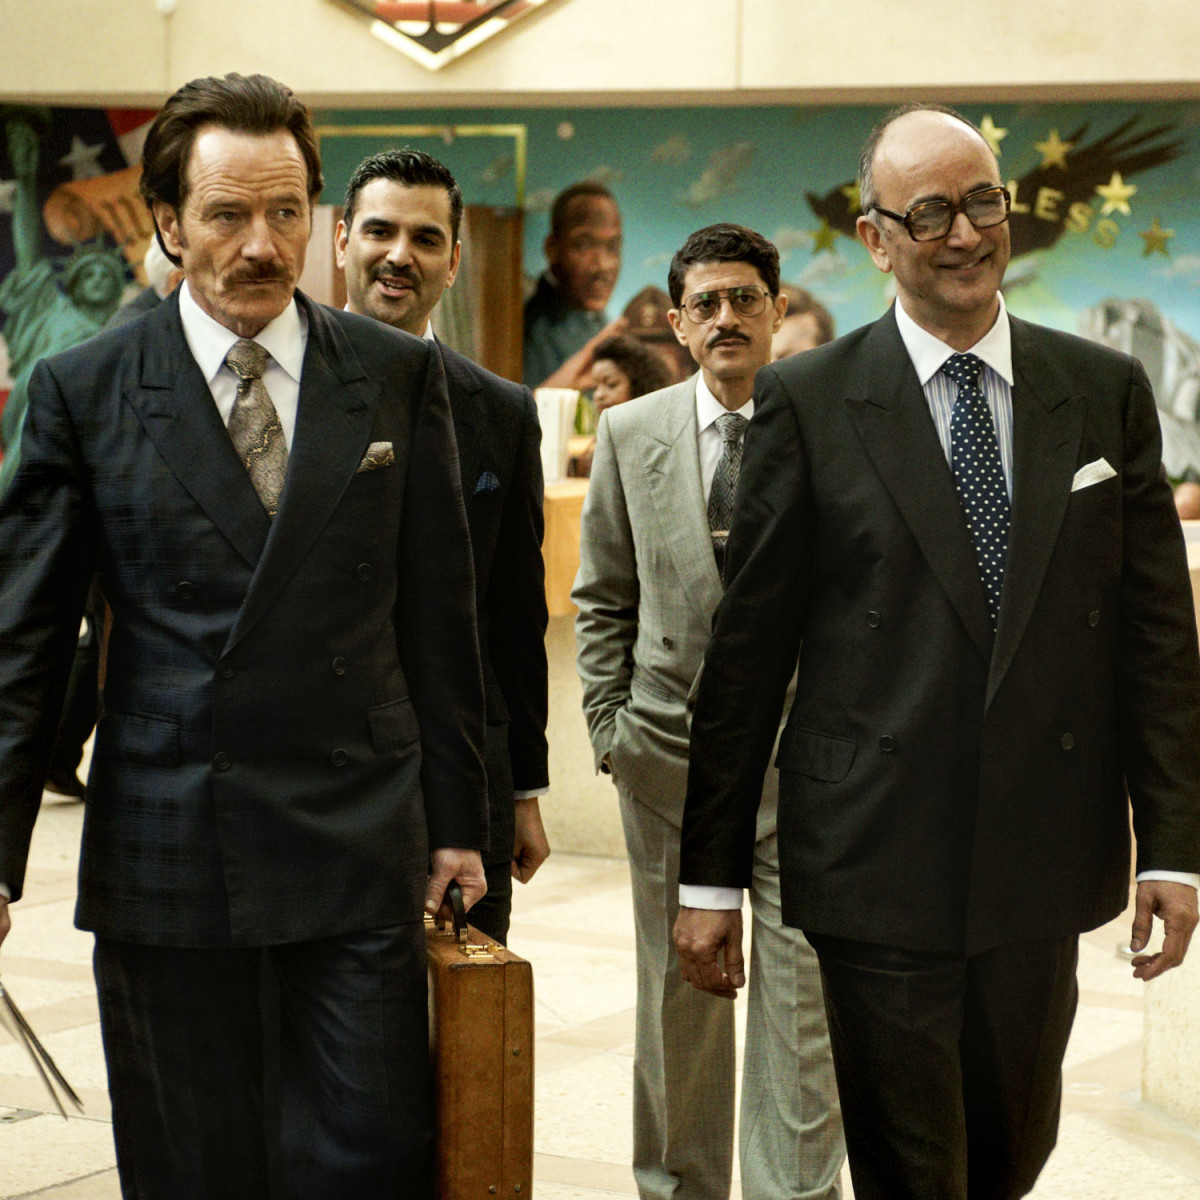 Bryan Cranston, Saïd Taghmaoui, and Art Malik in The Infiltrator